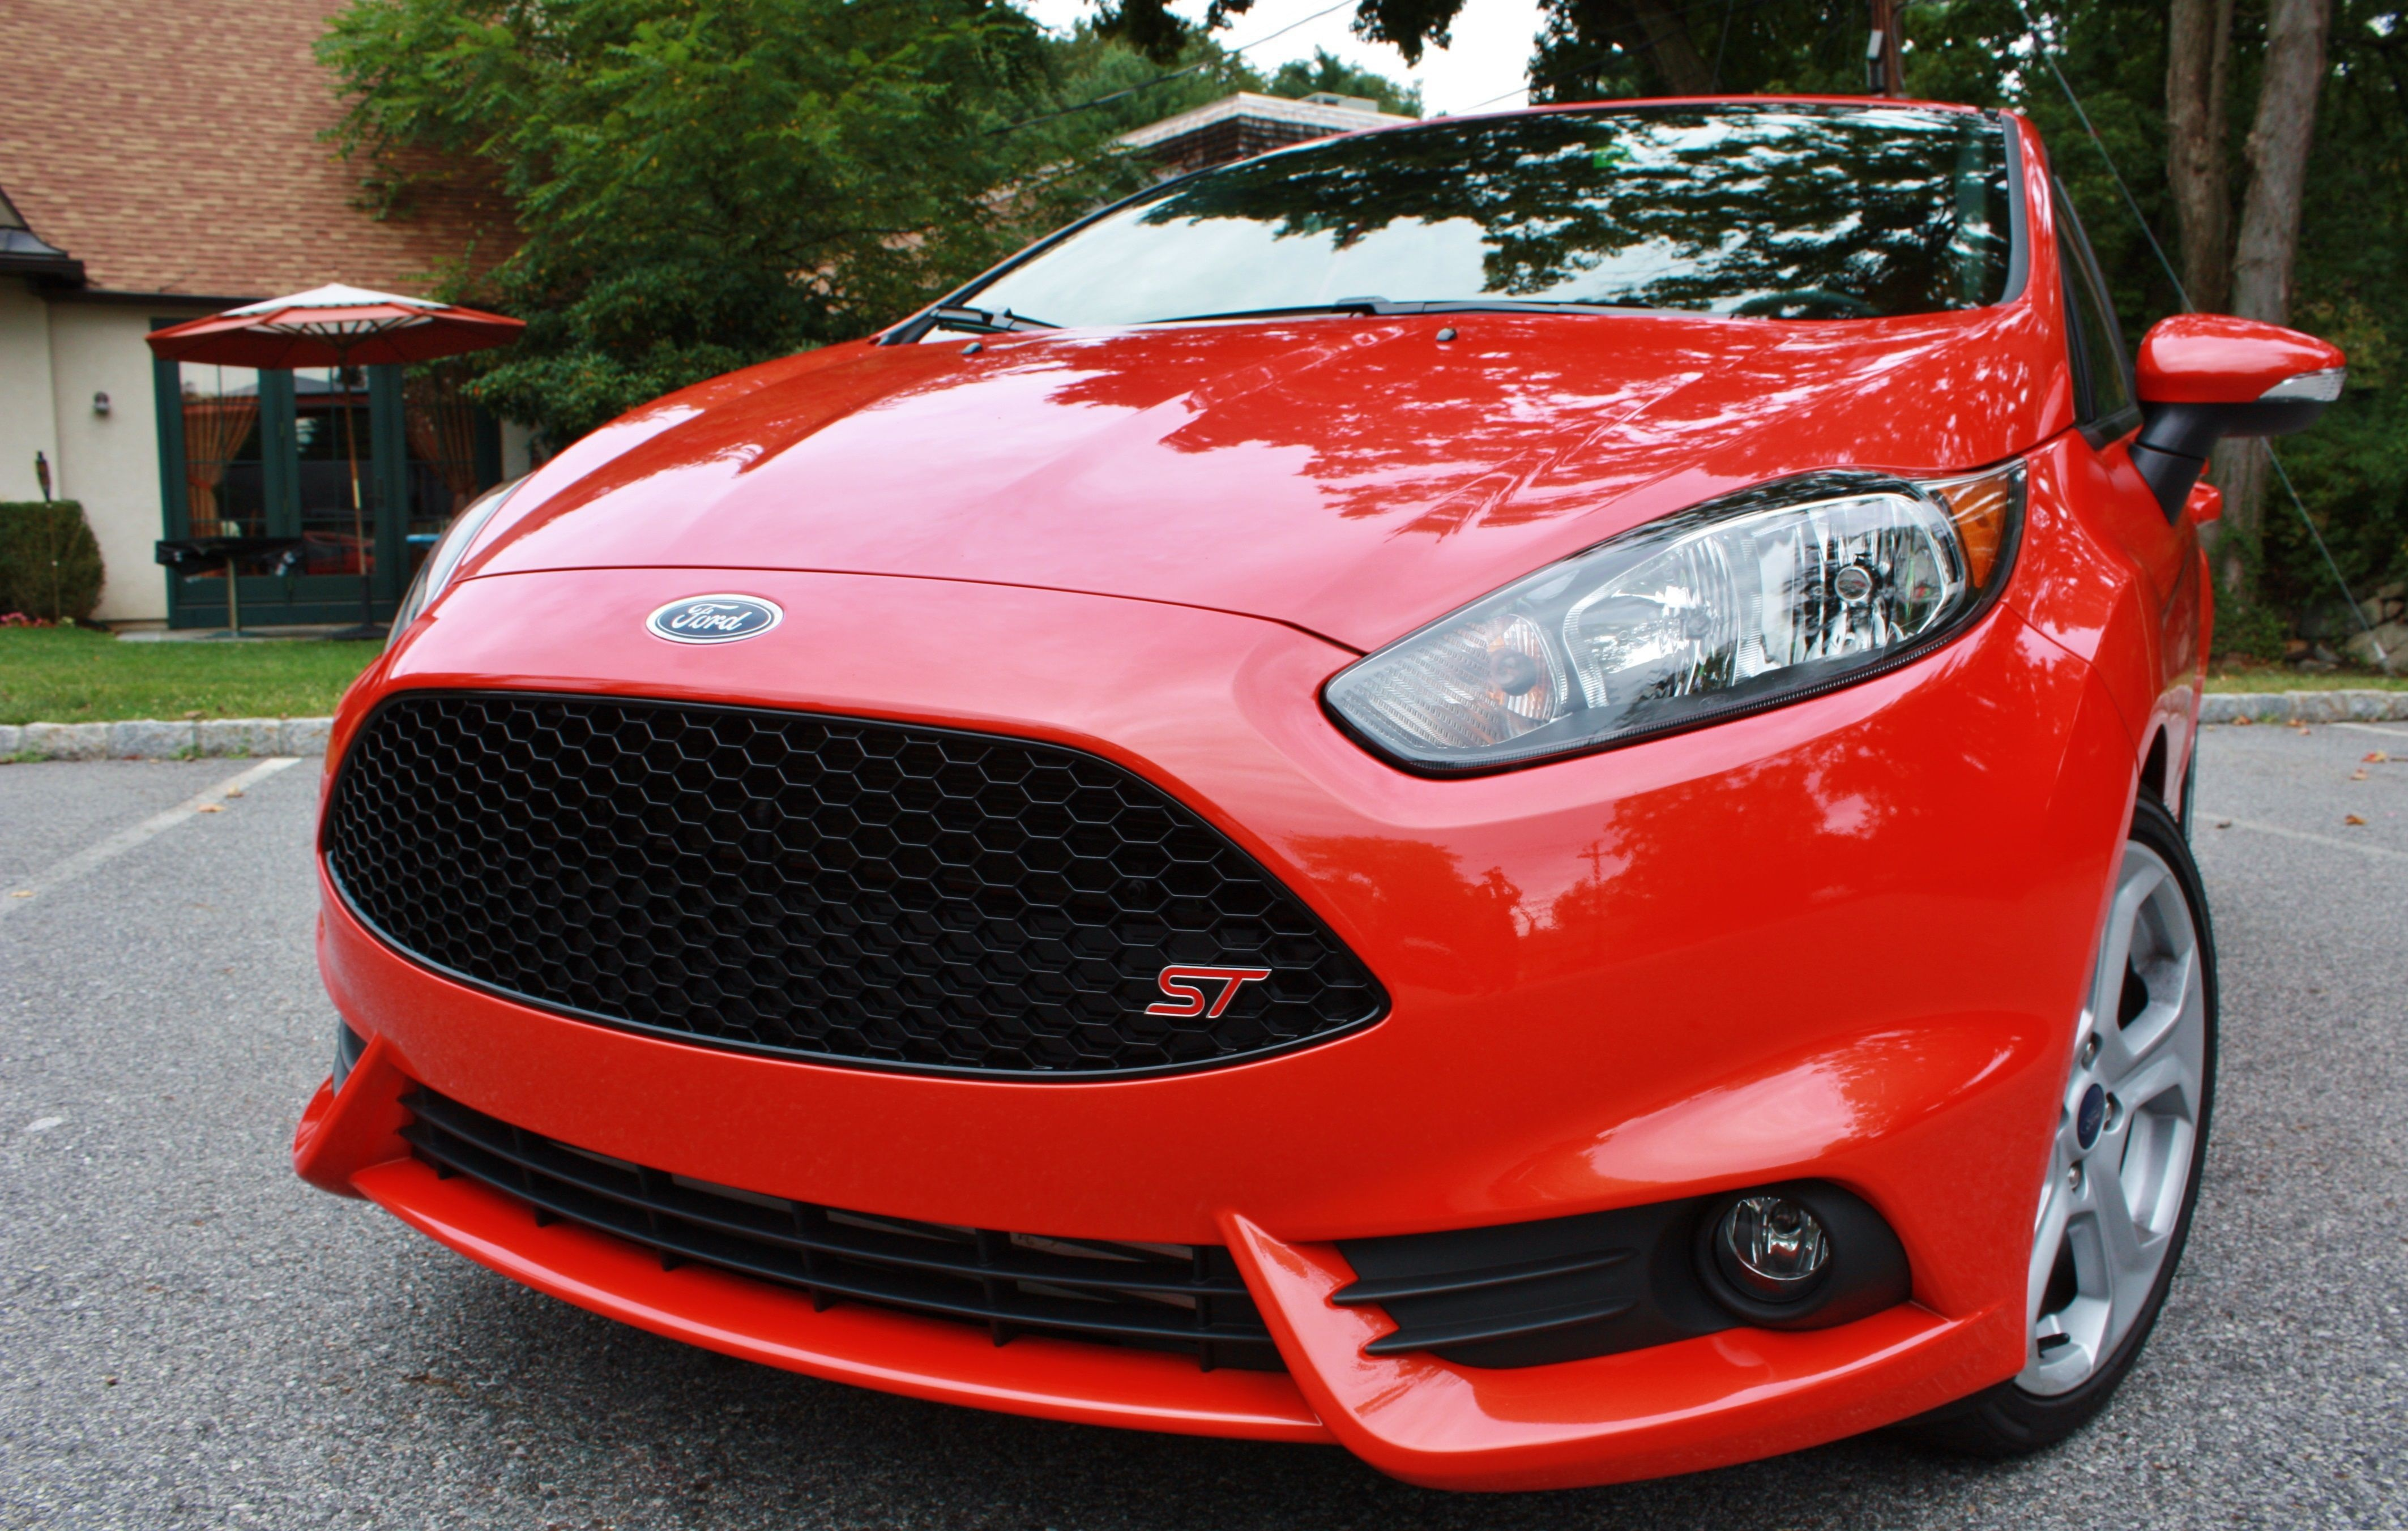 ford fiesta st wallpapers images photos pictures backgrounds. Black Bedroom Furniture Sets. Home Design Ideas